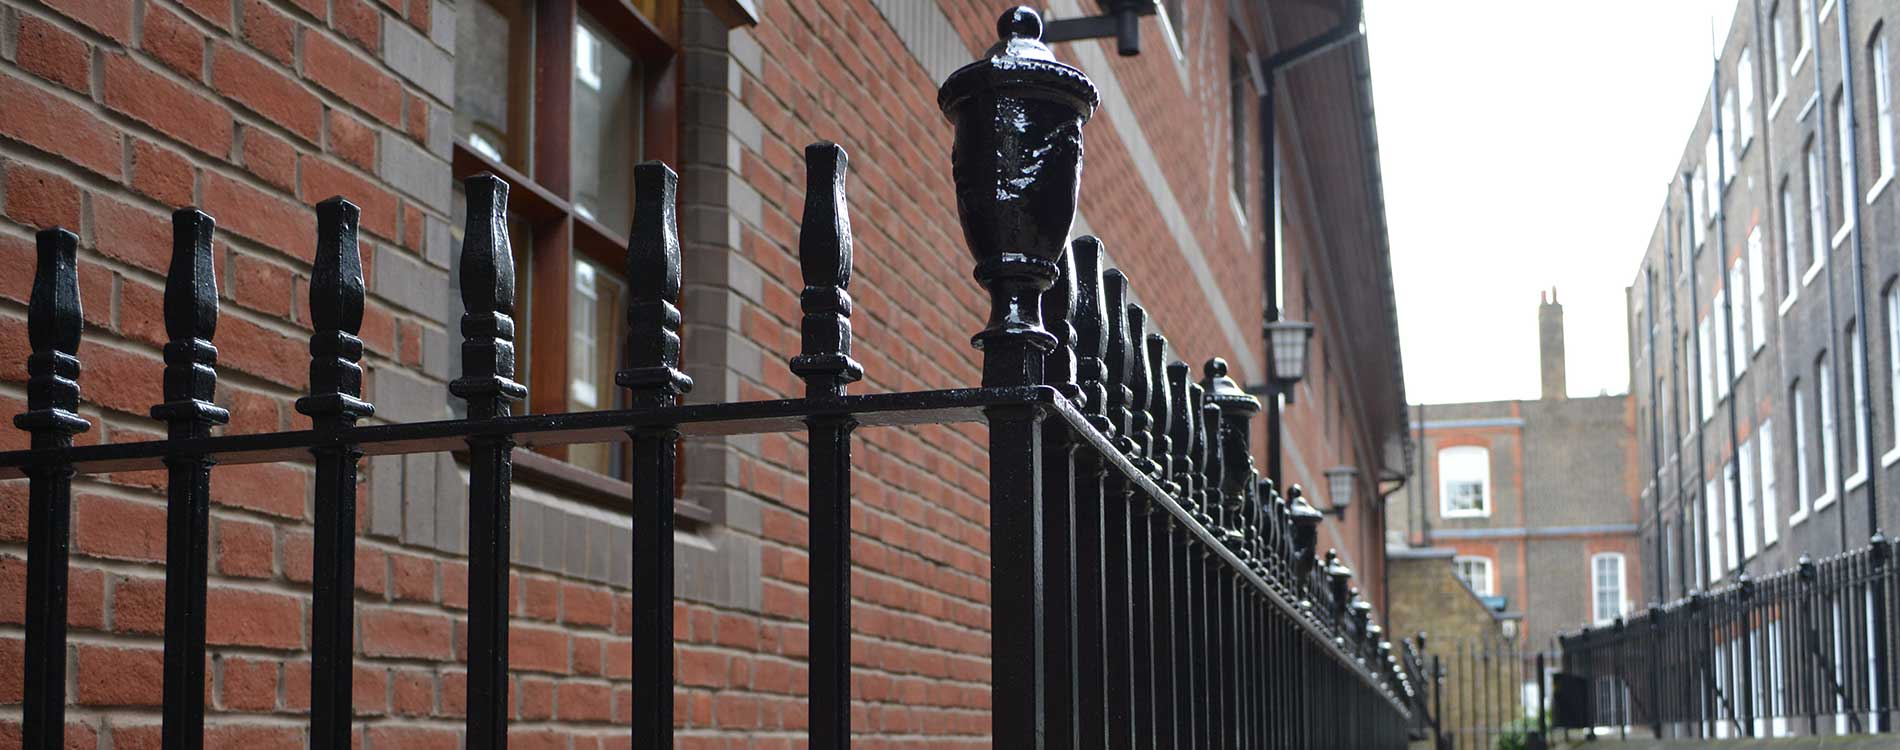 Repainted metal rail outside a heritage property